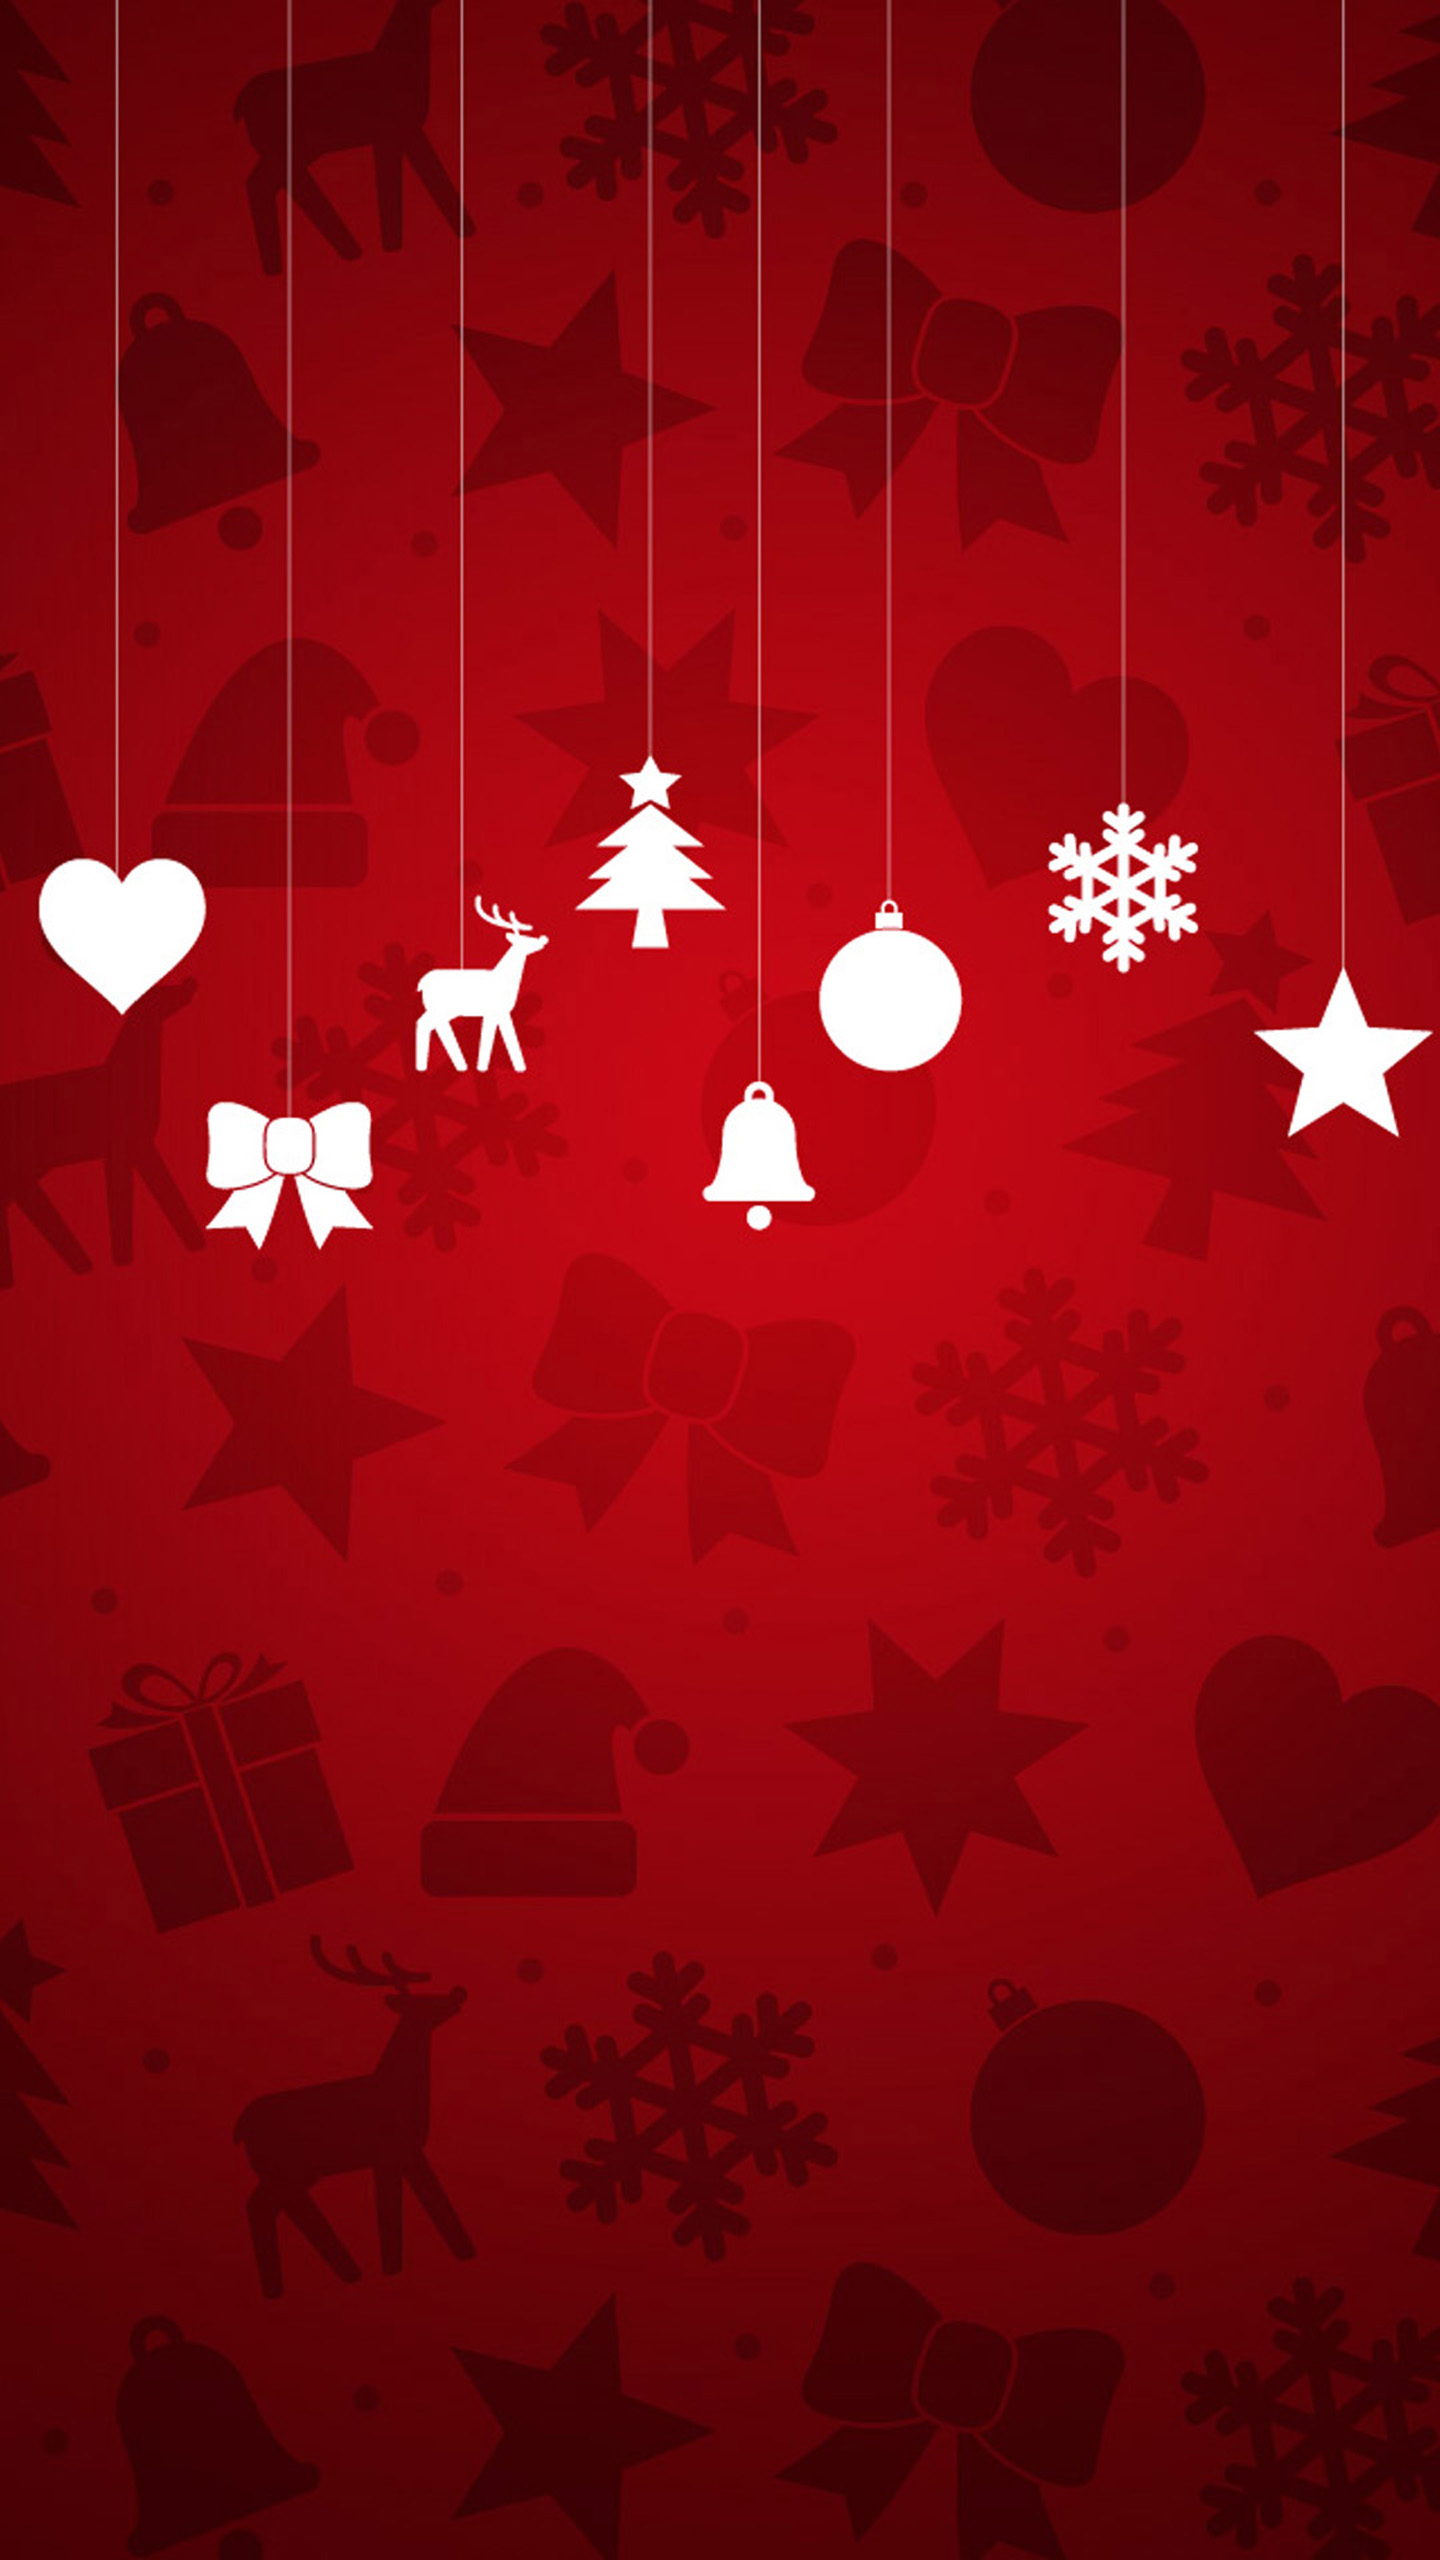 Android-Christmas-LG-G3-wallpapers jpg (1440×2560) | wallpapers